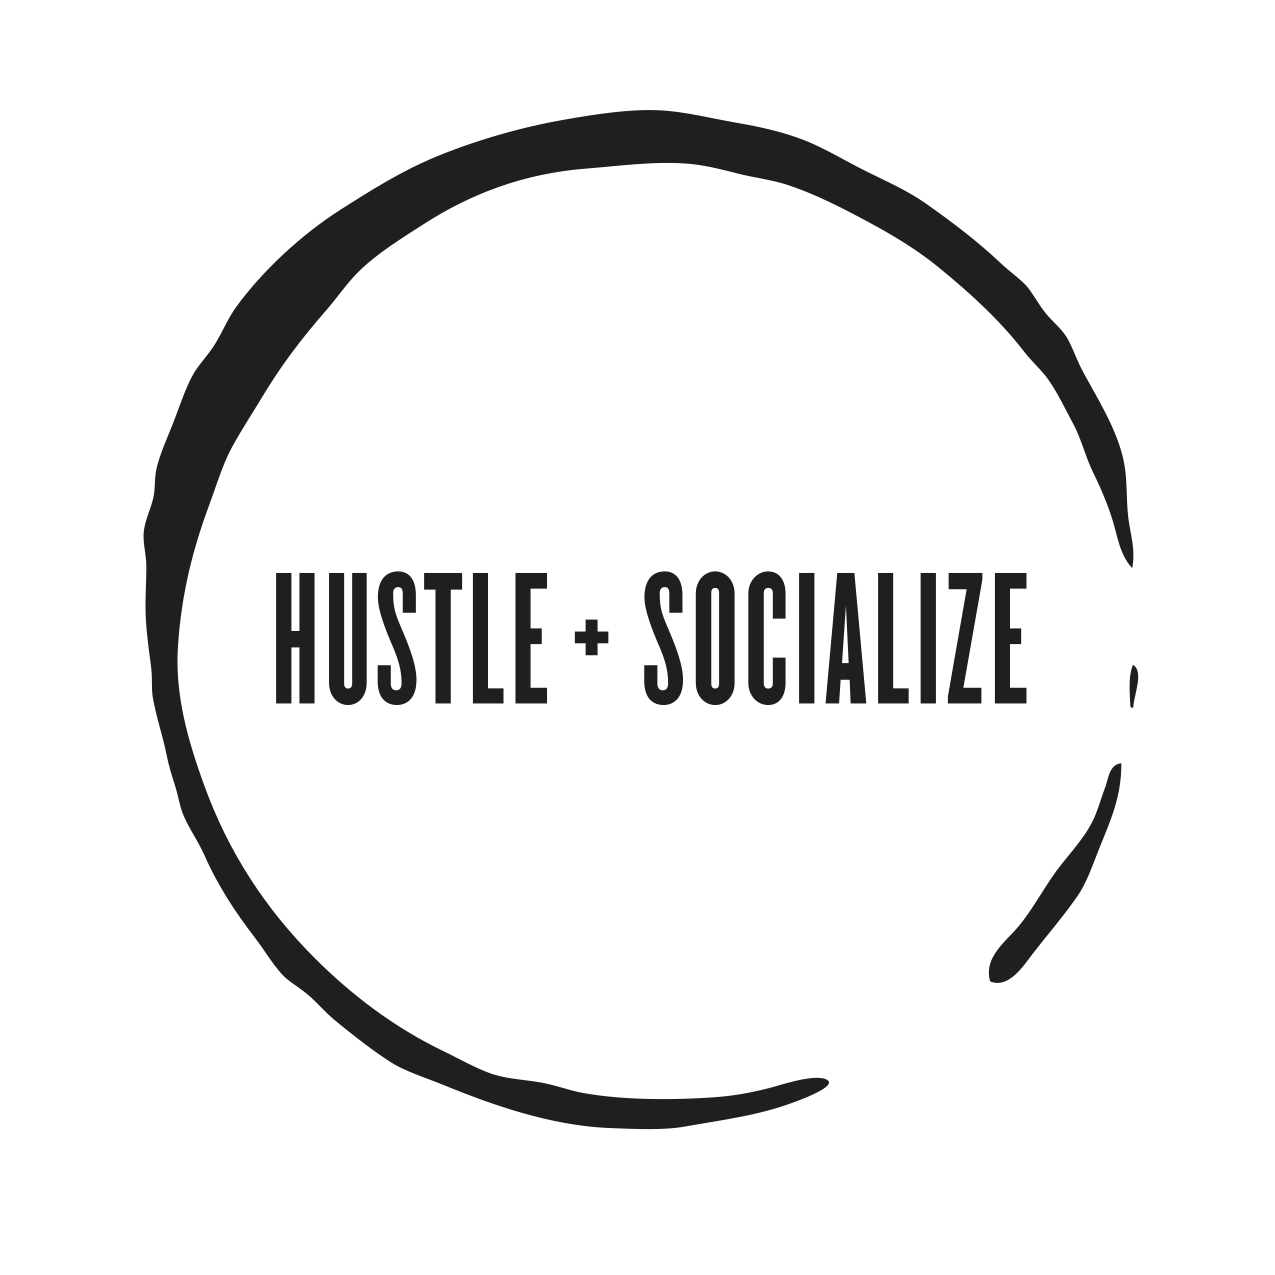 Hustle + Socialize